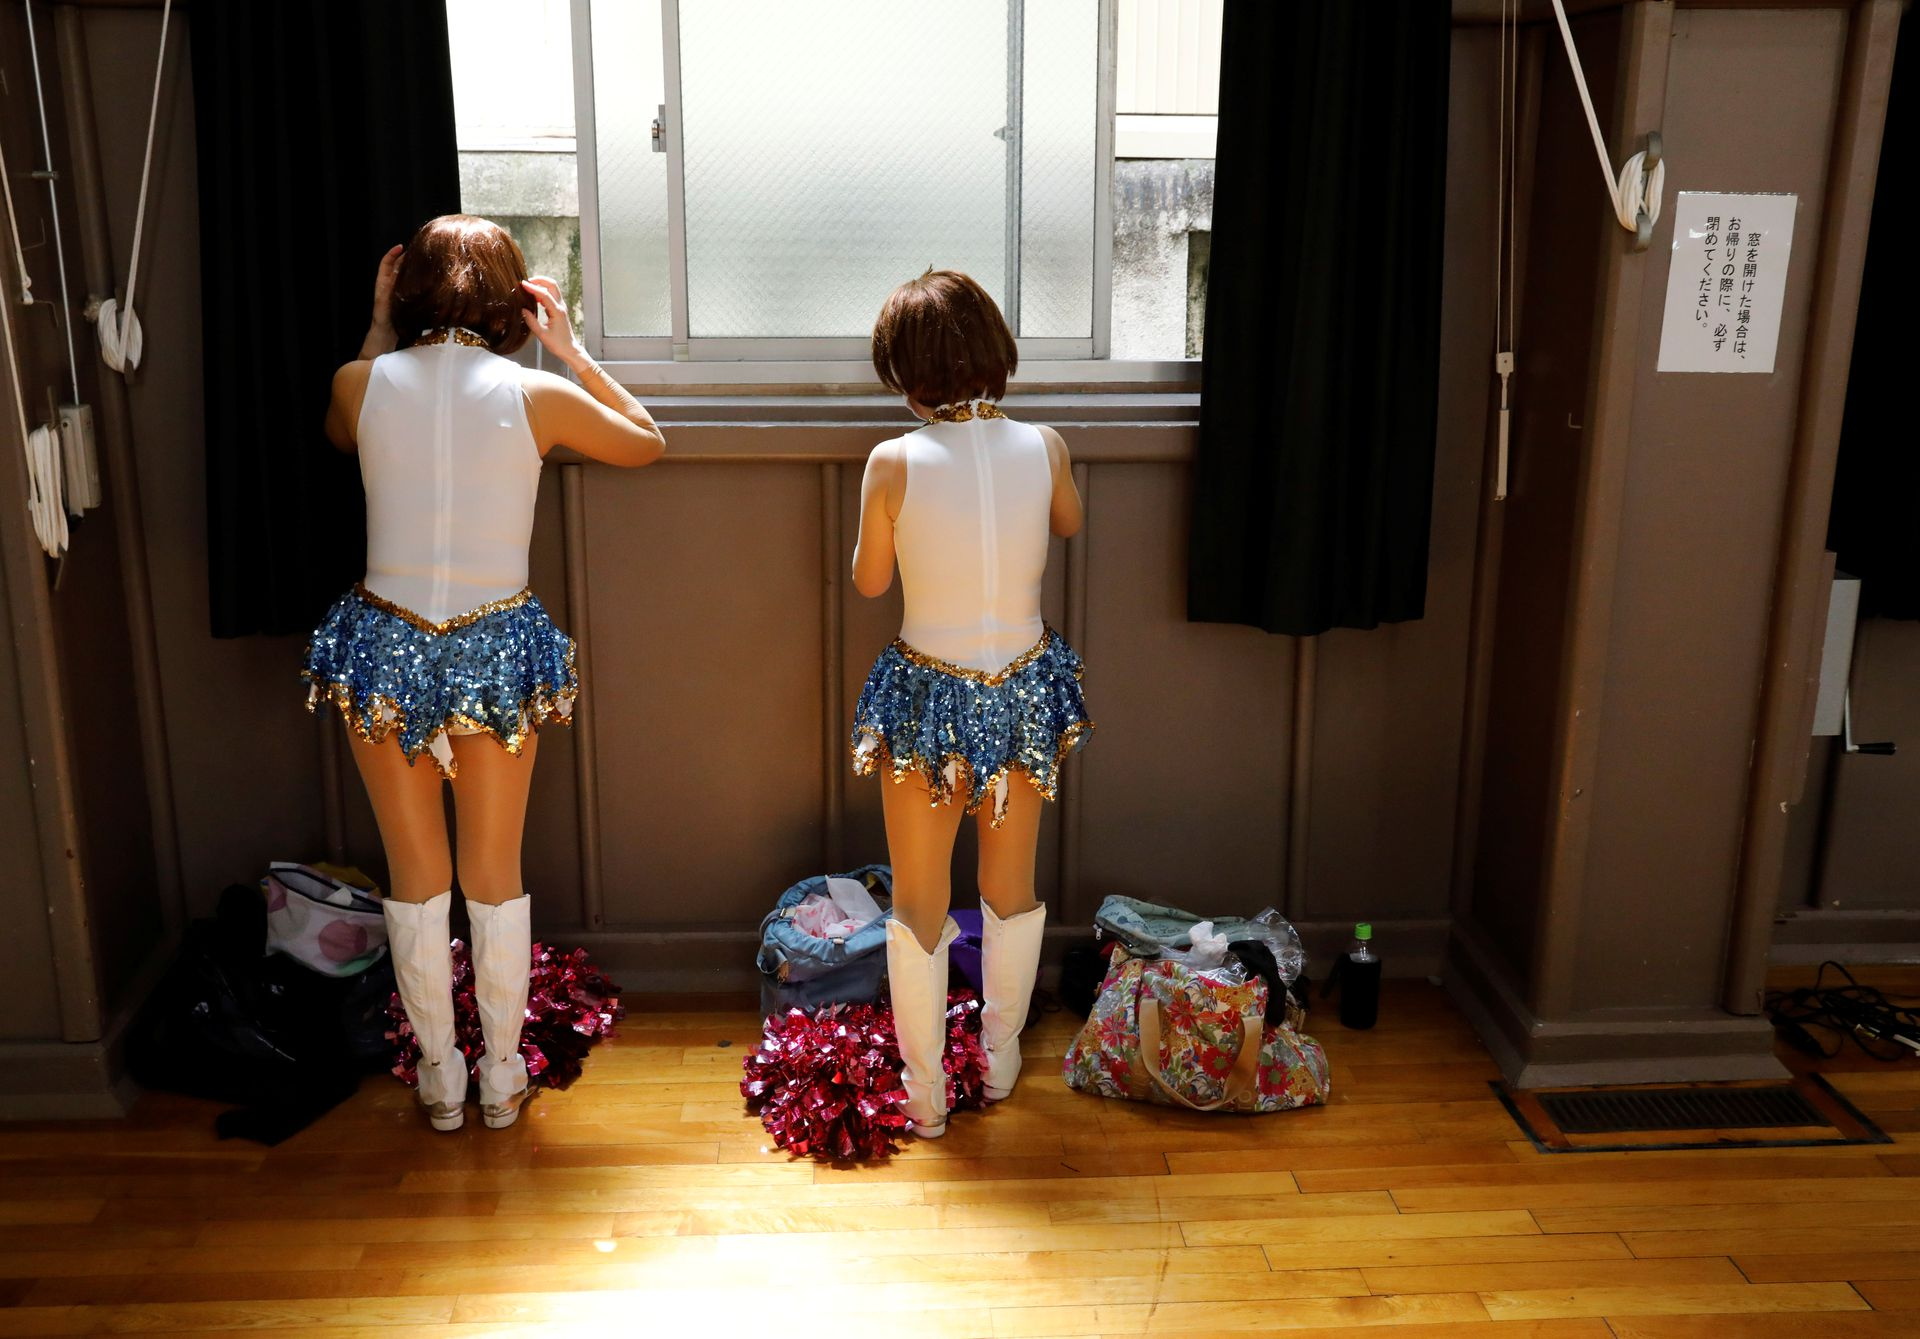 Members of a senior cheer squad called Japan Pom Pom prepare to film a dance routine for an online performance in Tokyo, Japan, April 12, 2021. Photo: Reuters